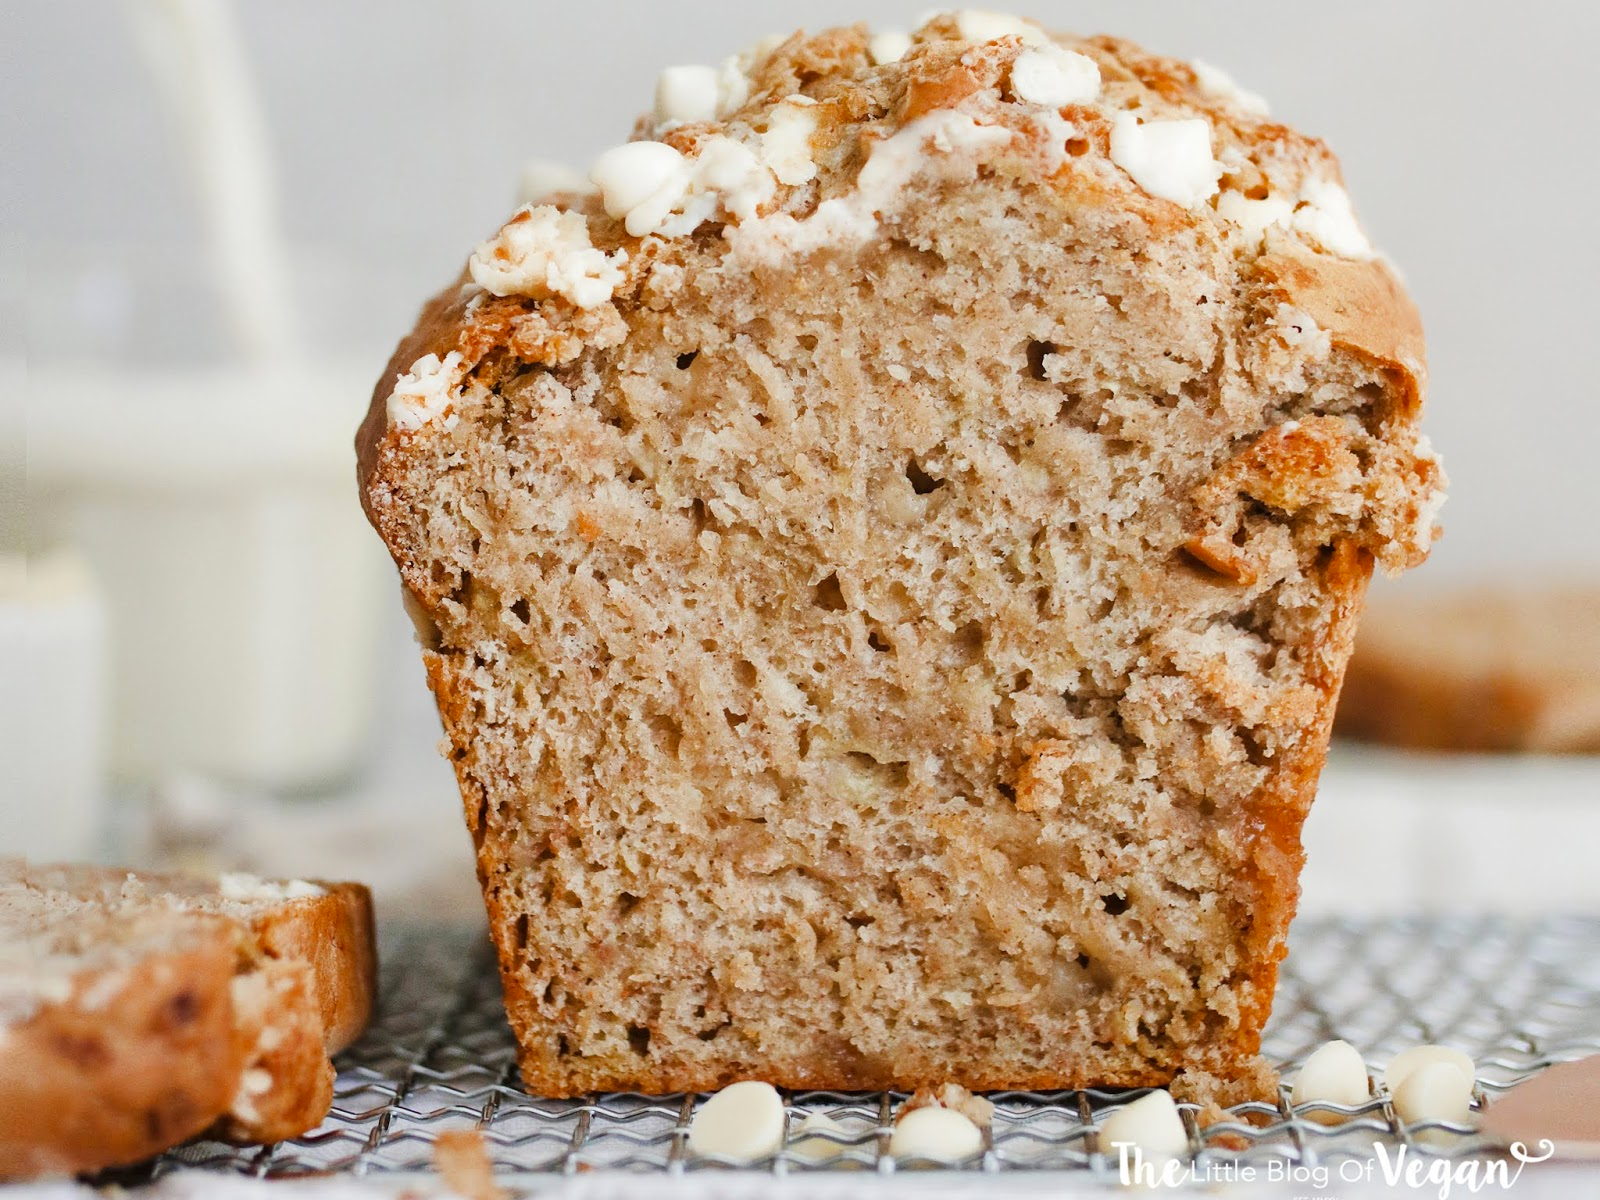 Vegan Easy White Chocolate Chip Banana Bread